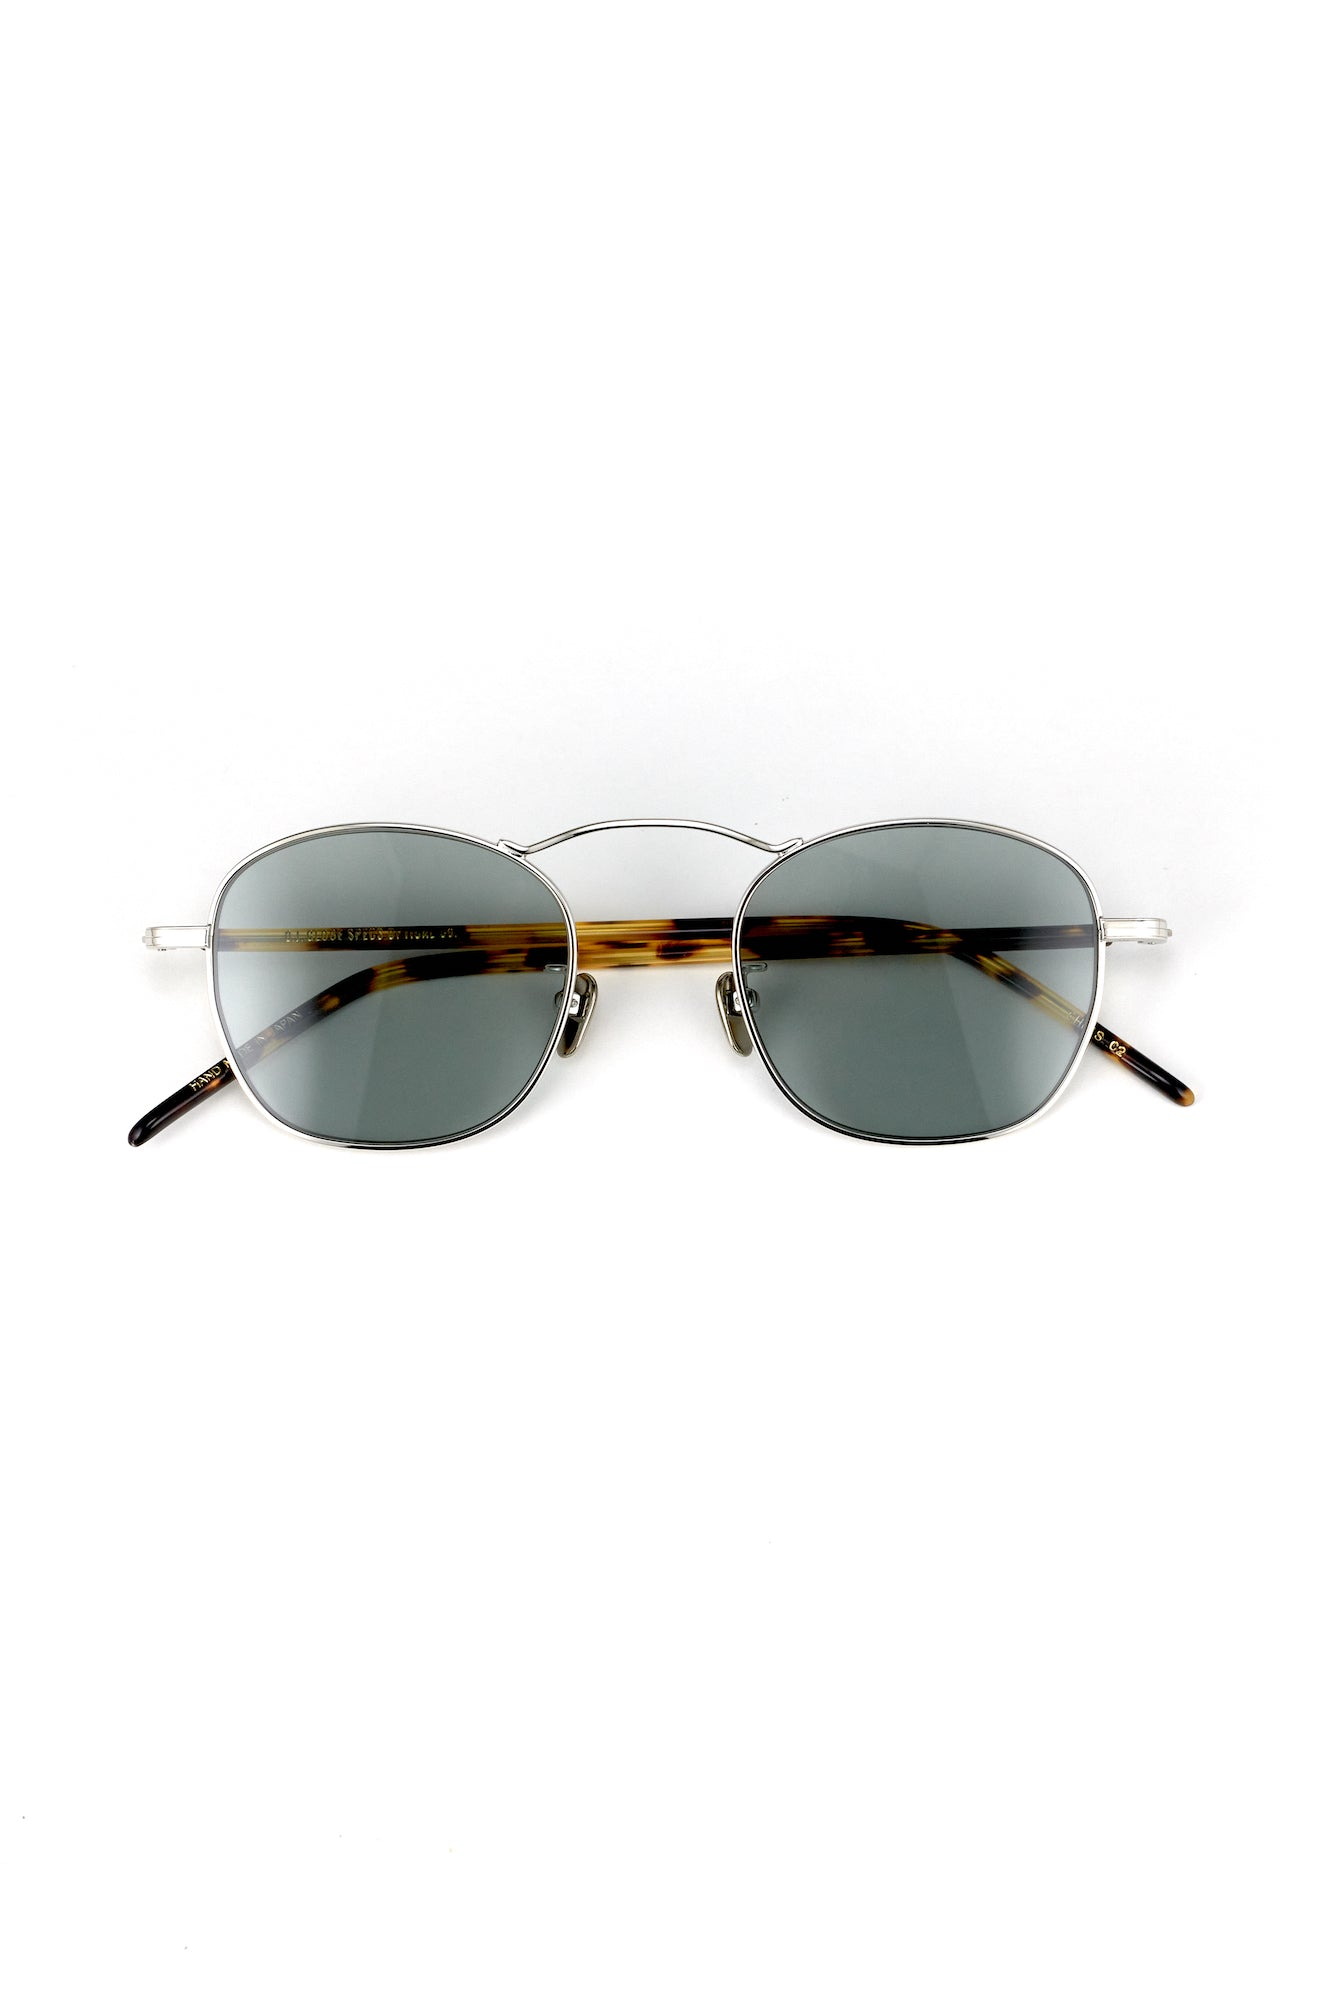 "〈お問い合わせ商品〉 ""CHRIS"" O.J. GLOBE SPECS OPTICAL Co - 201OJG-AC04"